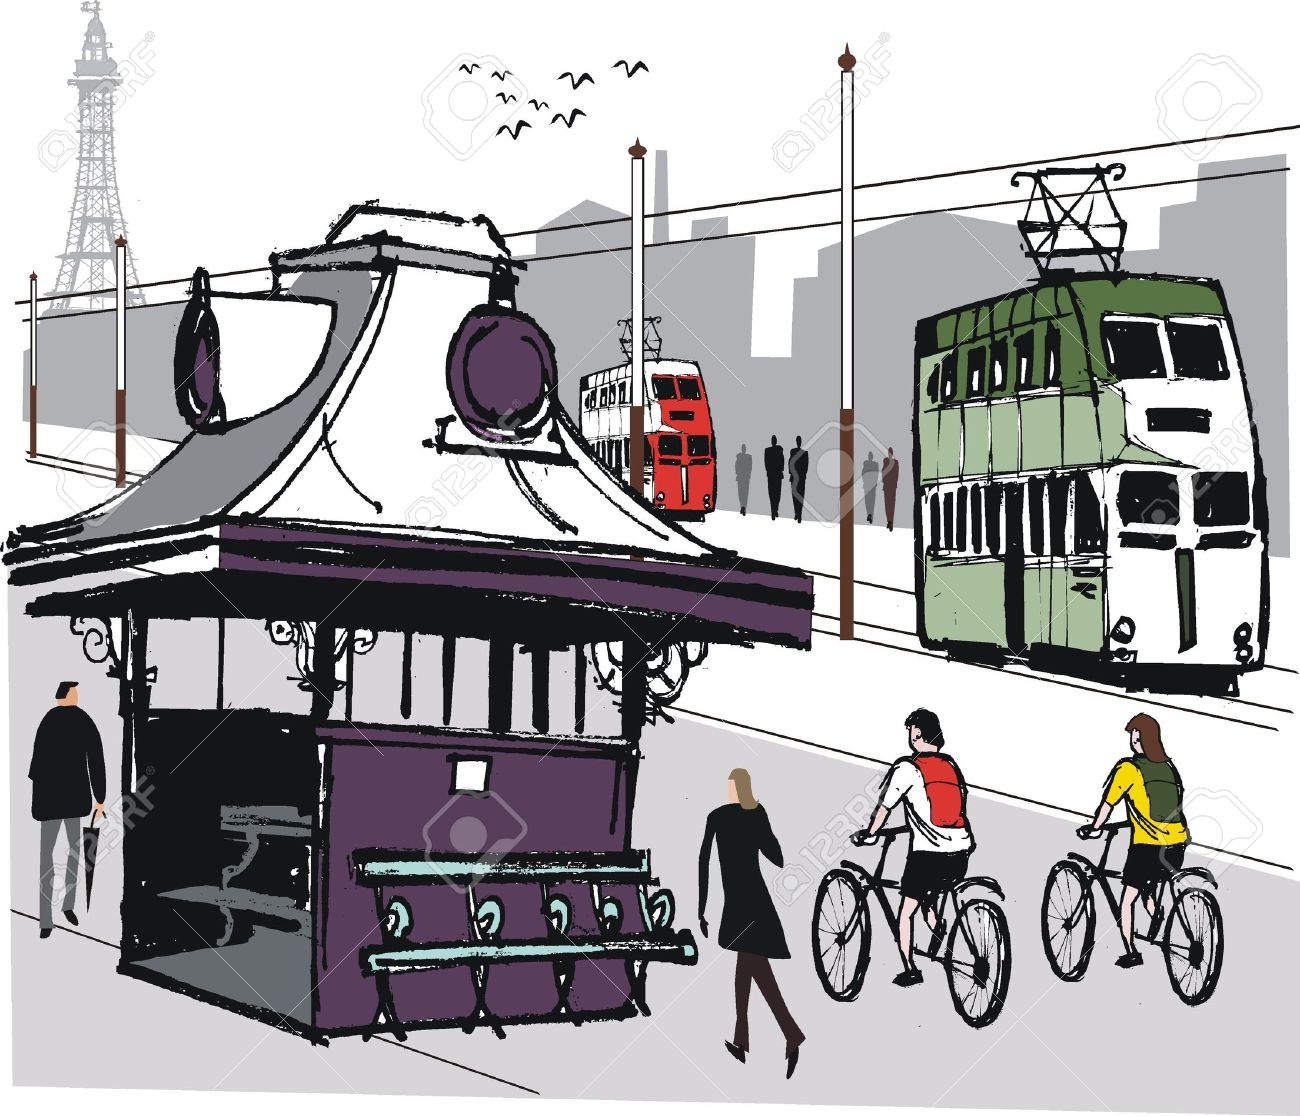 Blackpool Tram Illustration Royalty Free Cliparts, Vectors, And.